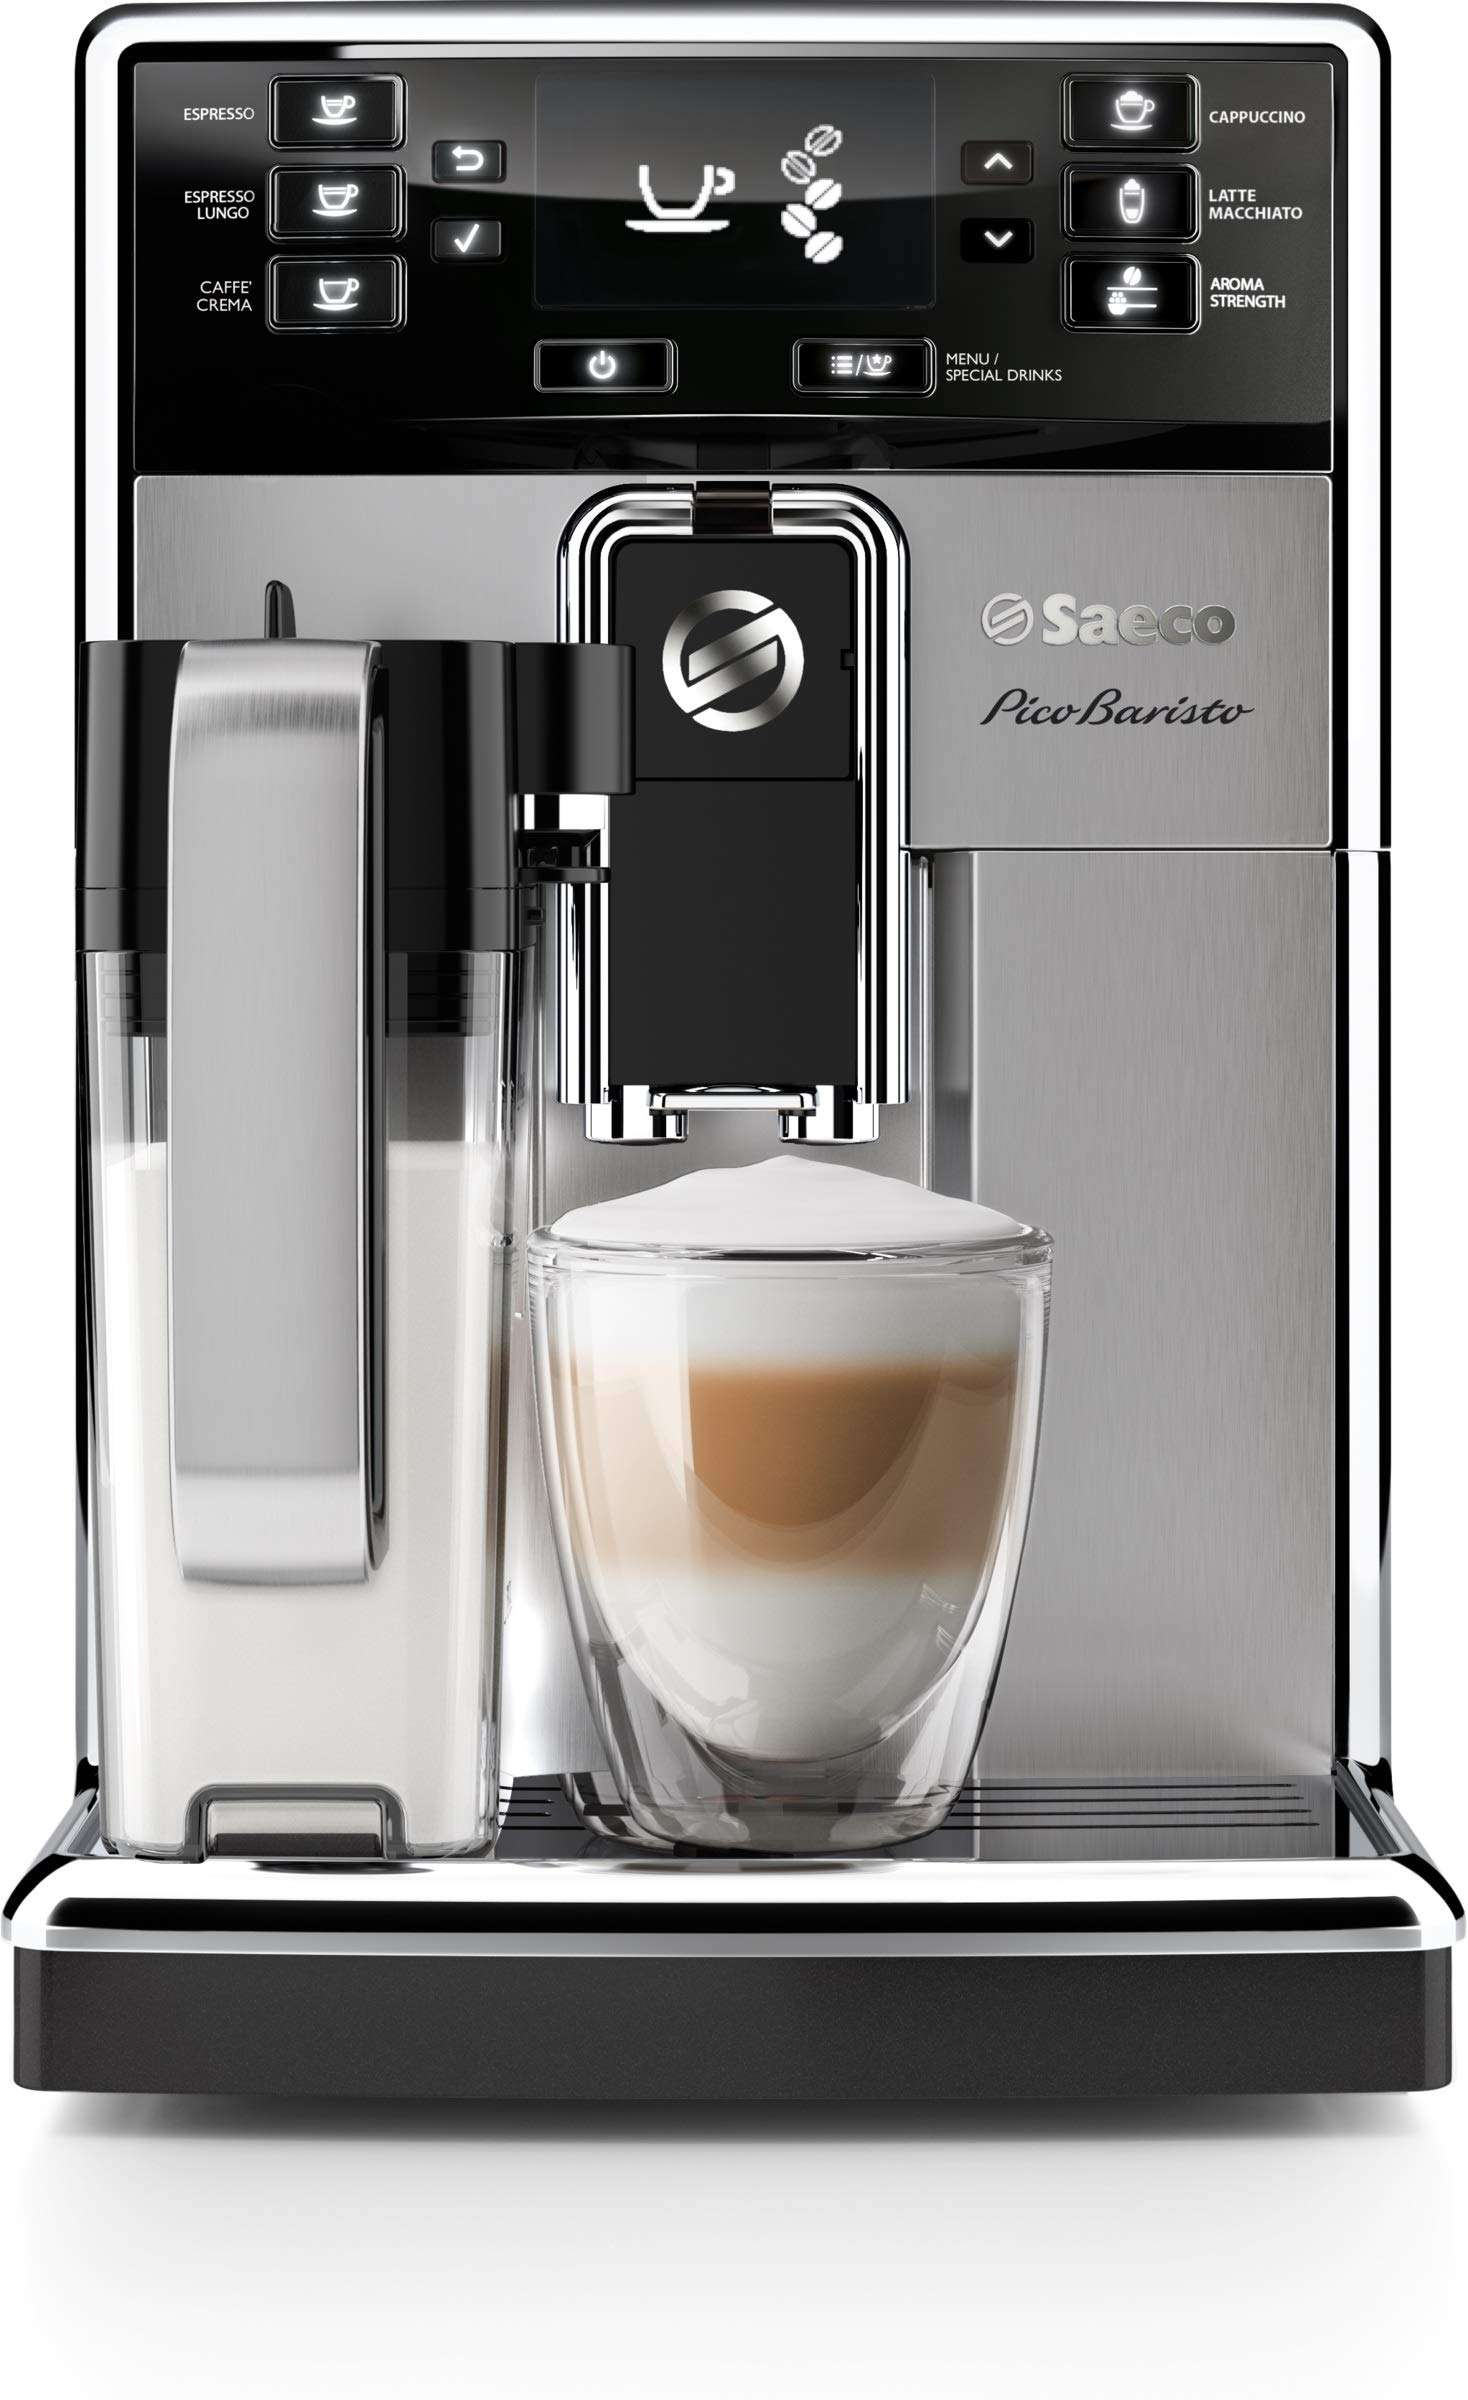 Saeco HD8927/47 PicoBaristo Super Automatic Espresso Machine Stainless Steel by Saeco